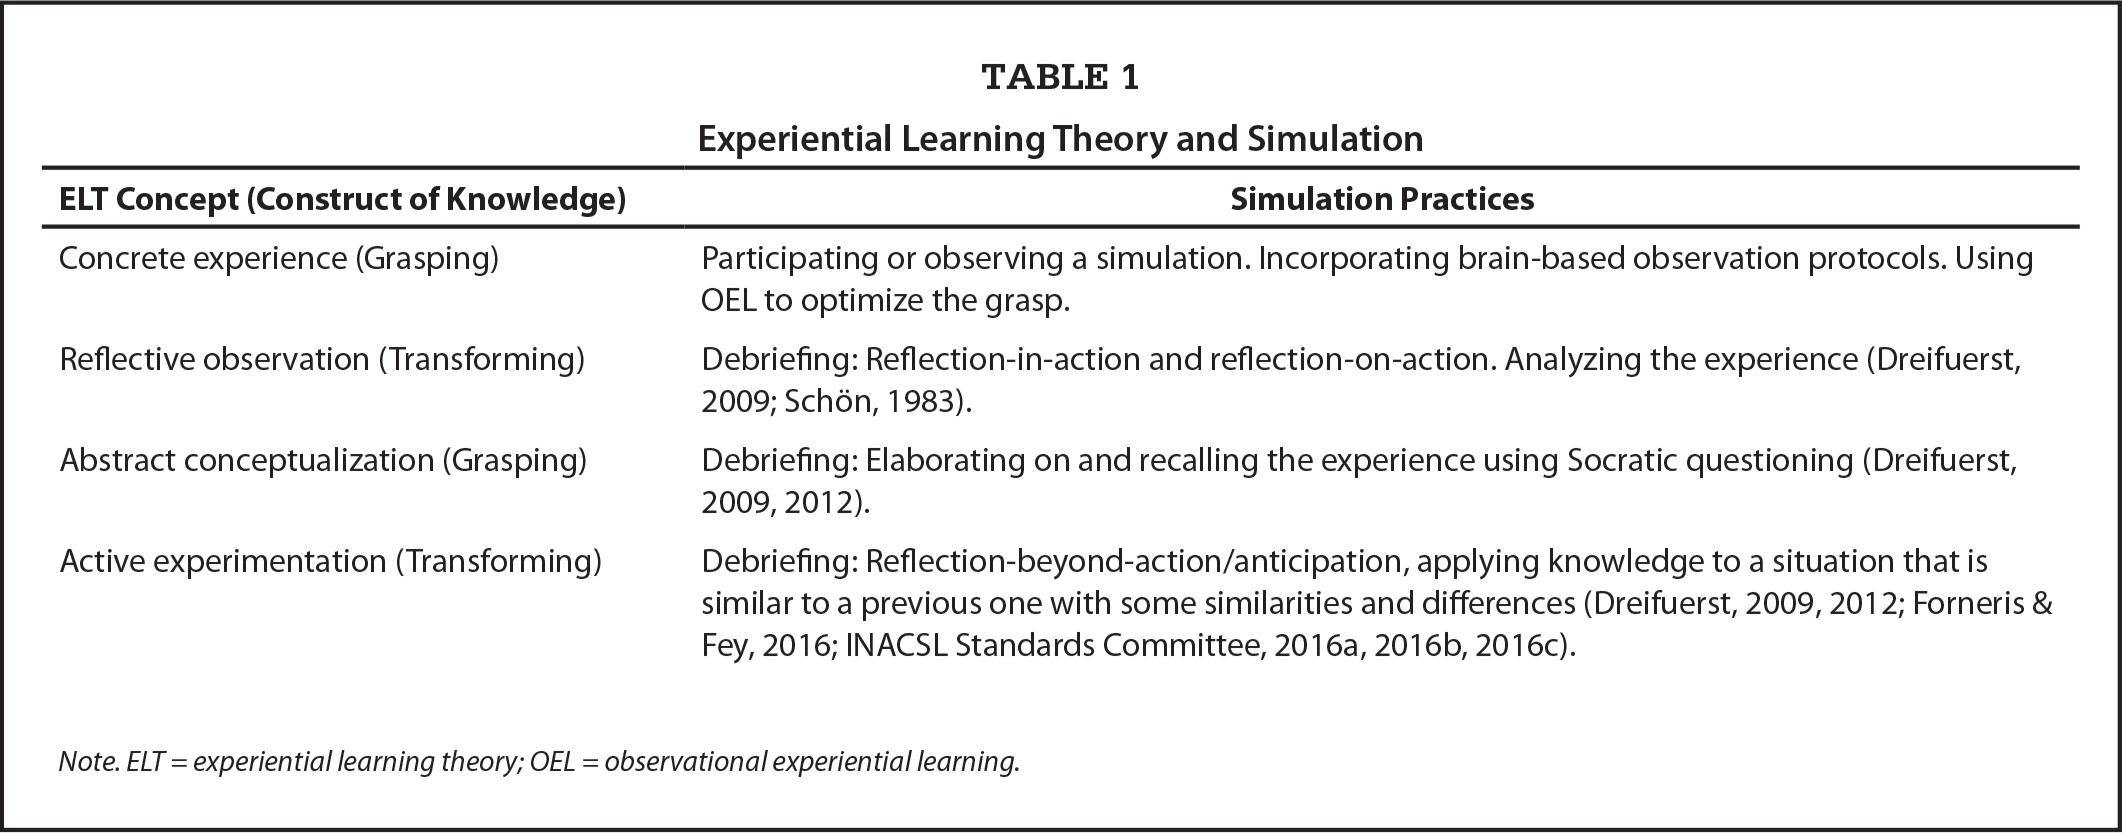 Experiential Learning Theory and Simulation